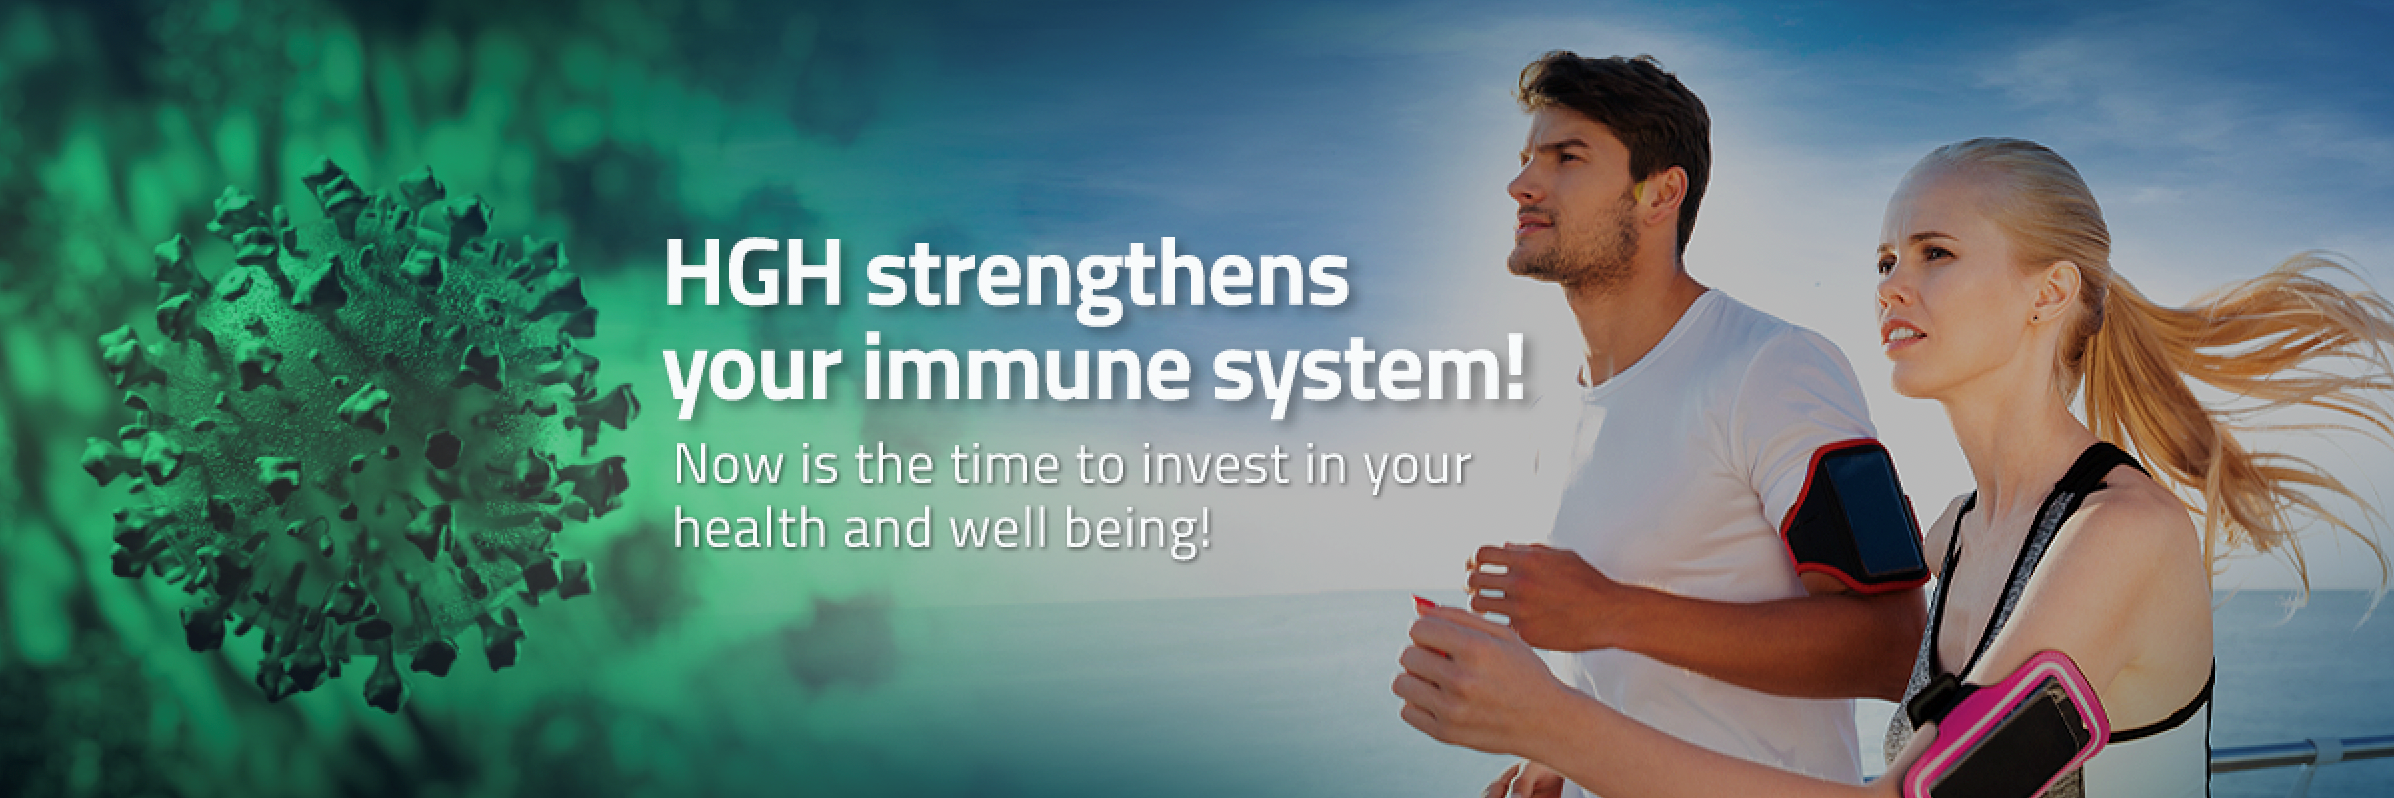 HGH strengthens your immune system